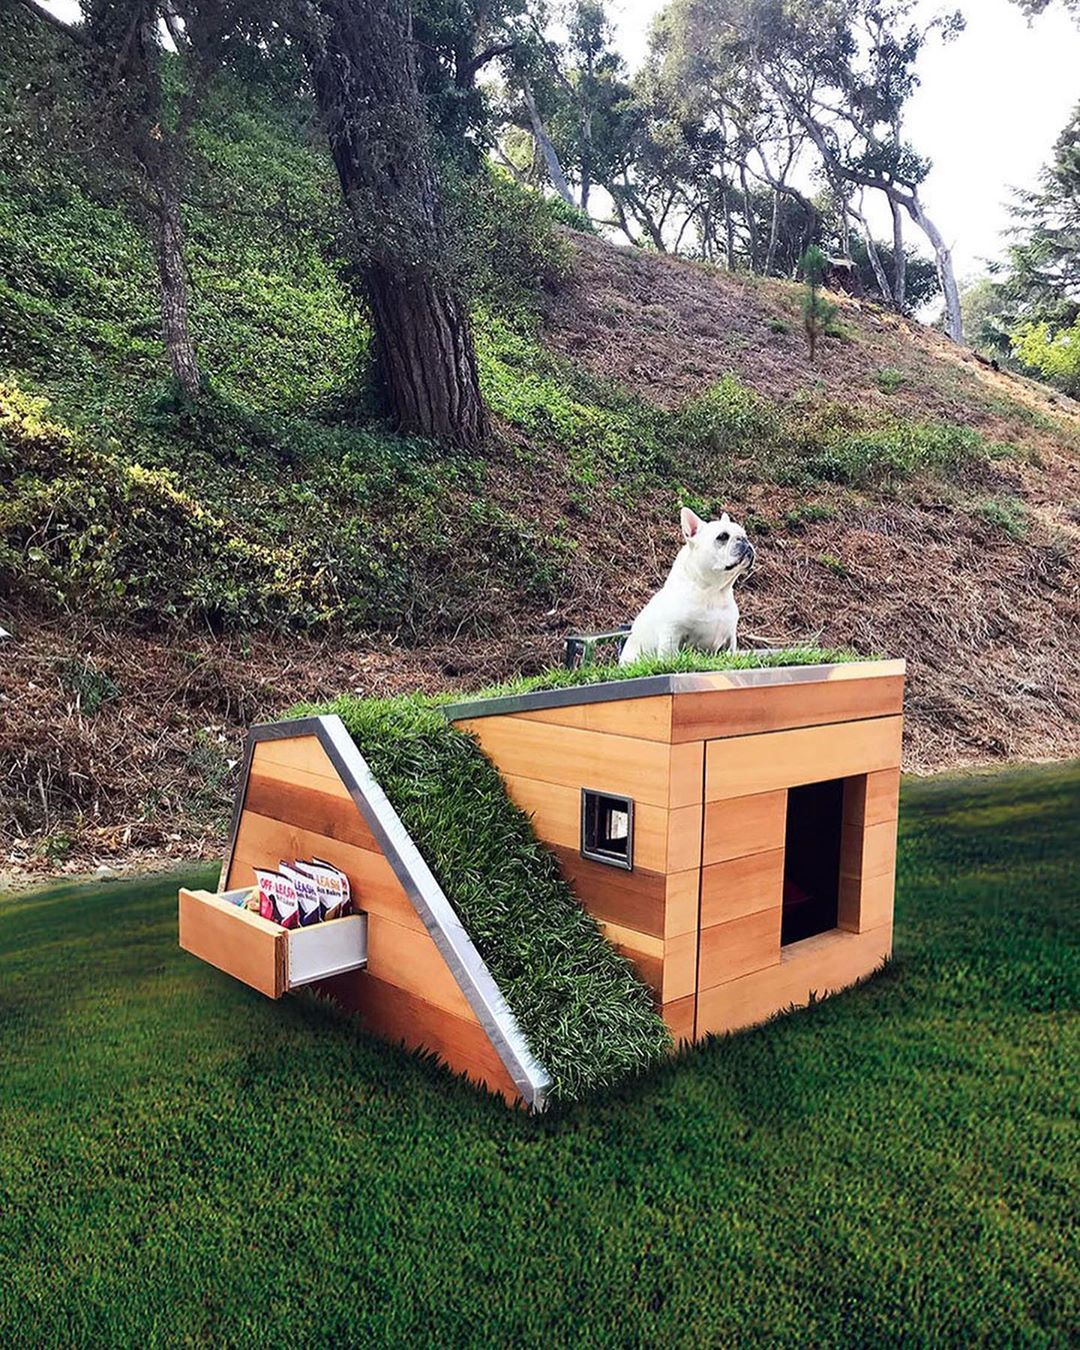 Architecture Design On Instagram Which Pet House Is Your Favourite 1 2 3 4 Or 5 Image 1 A Doggy Dr Cool Dog Houses Fancy Dog Houses Dog House Diy